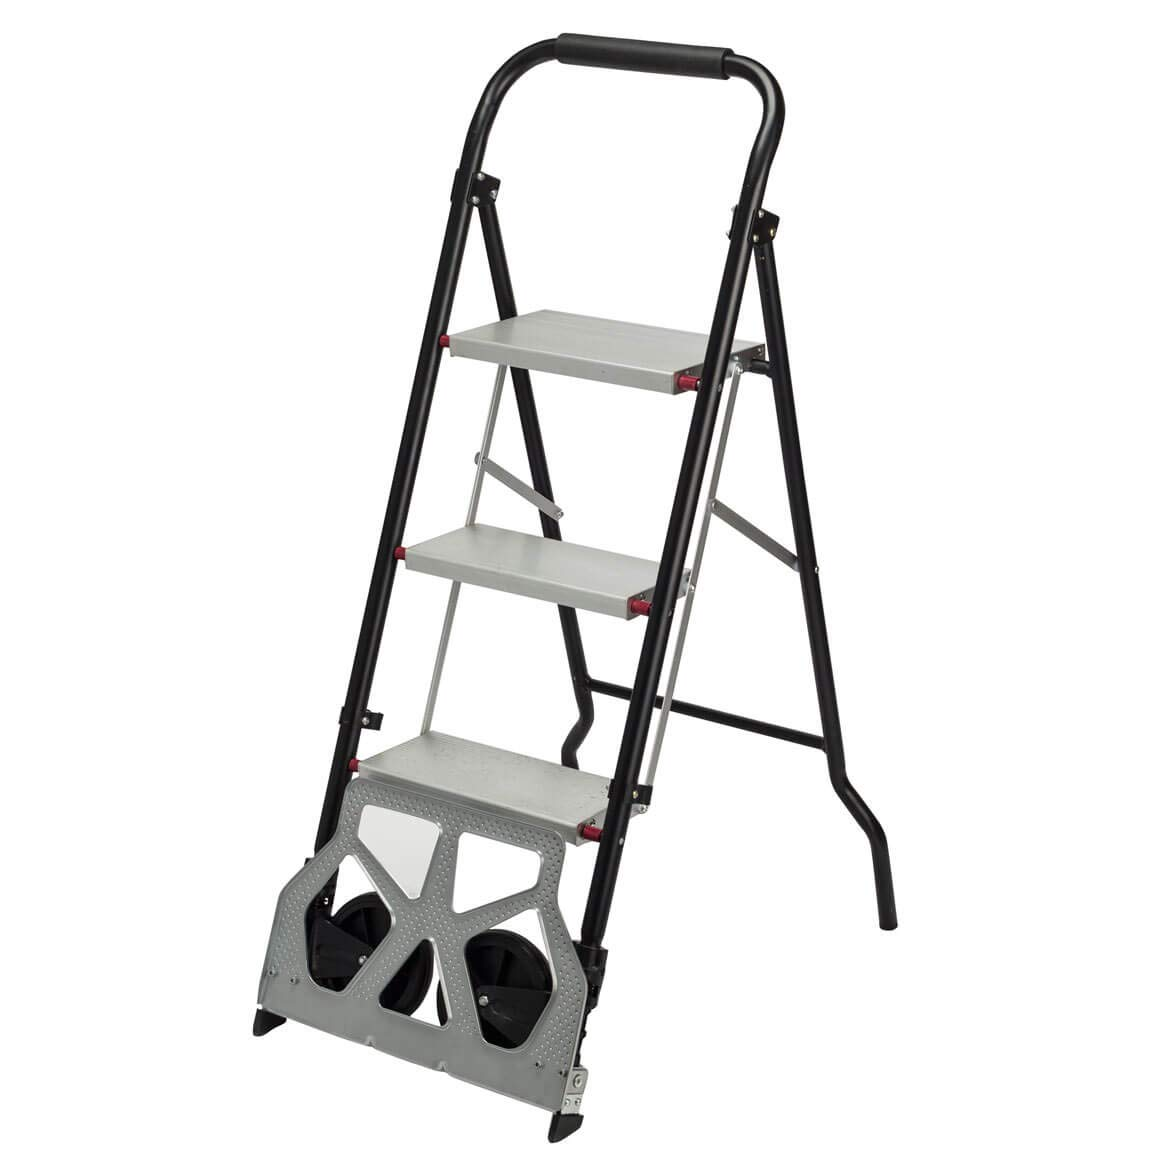 MS Home Rolling Step Ladder Dolly - Steel and Aluminum Supports up to 550 lbs; Folding Dolly Supports up to 175 lbs - 15 1/4'' W x 45 1/2'' H